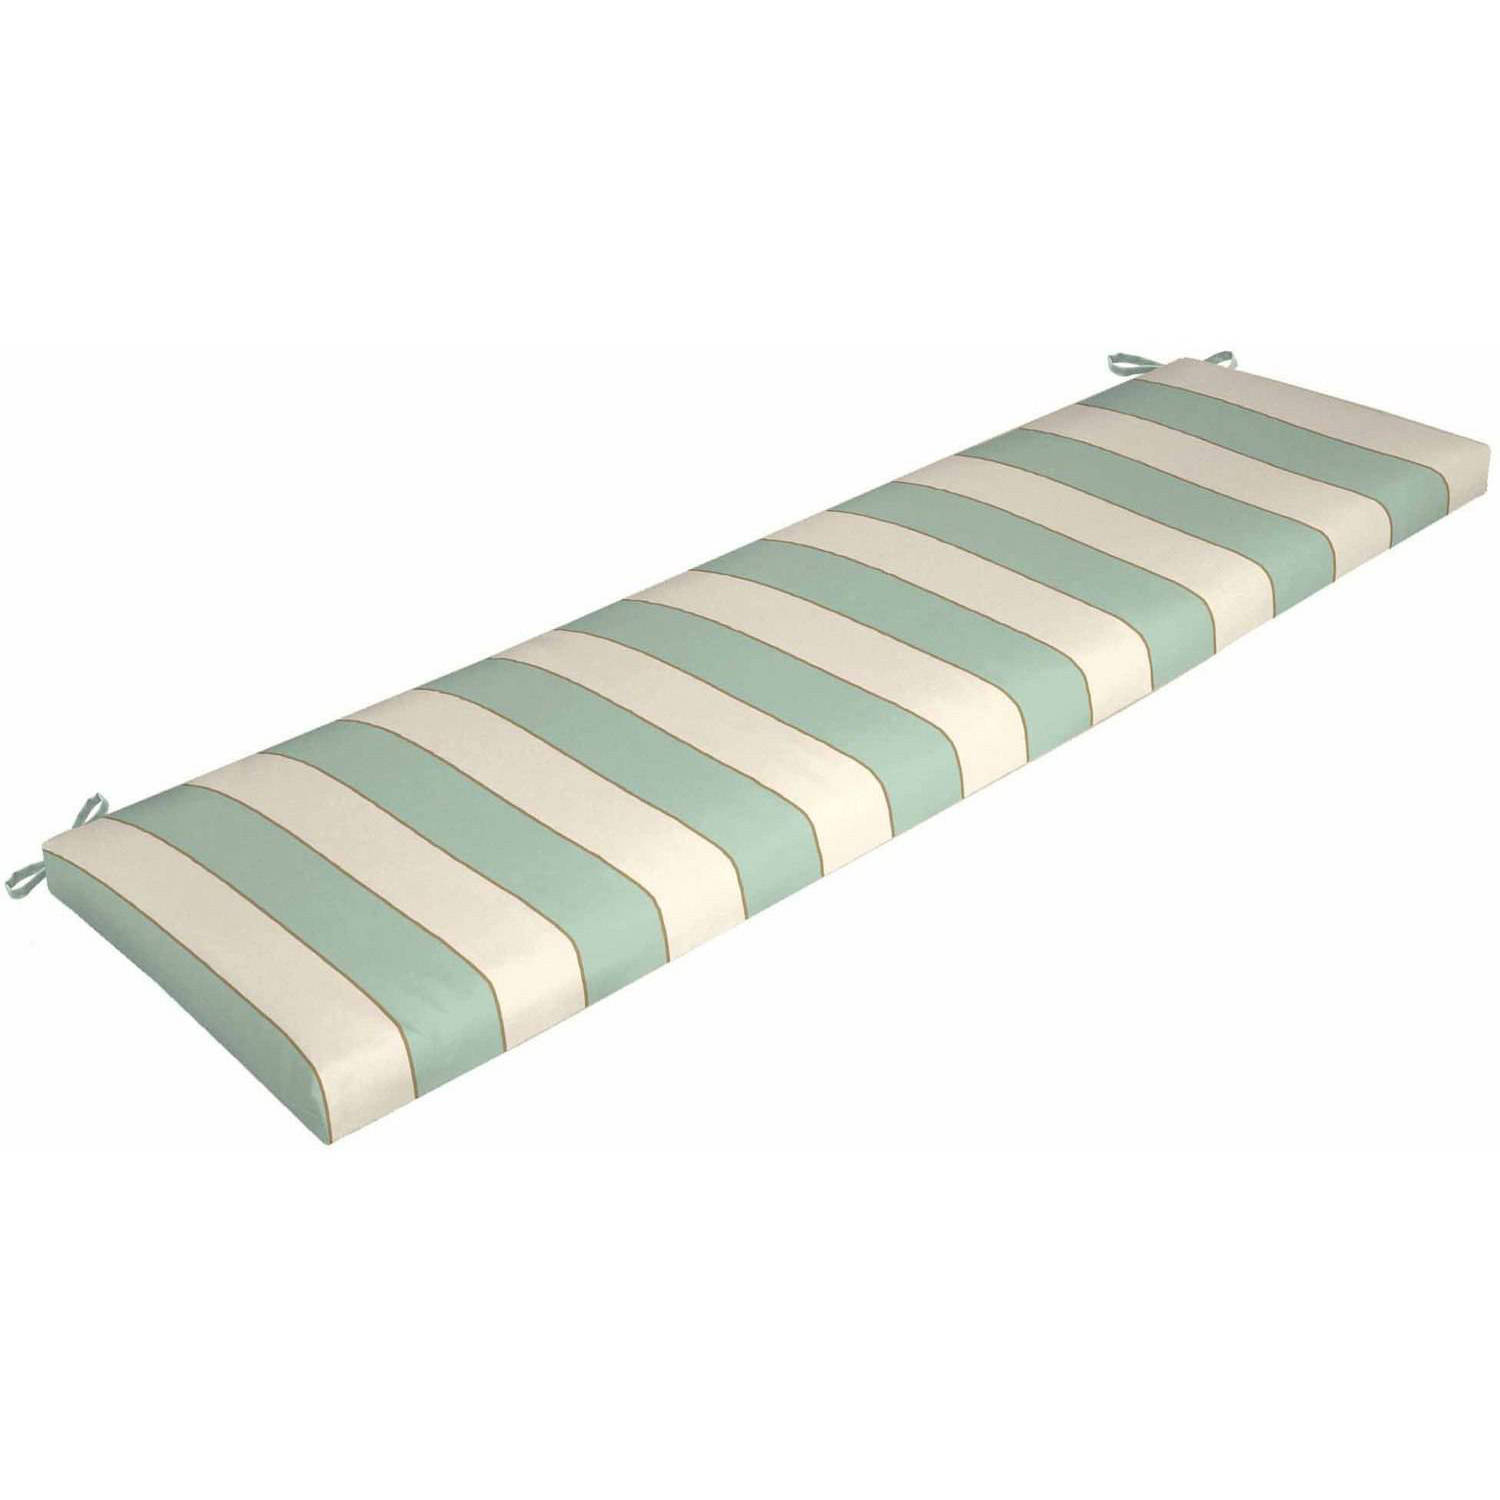 Better Homes And Gardens Outdoor Patio Bench Cushion, Seashells Stripe